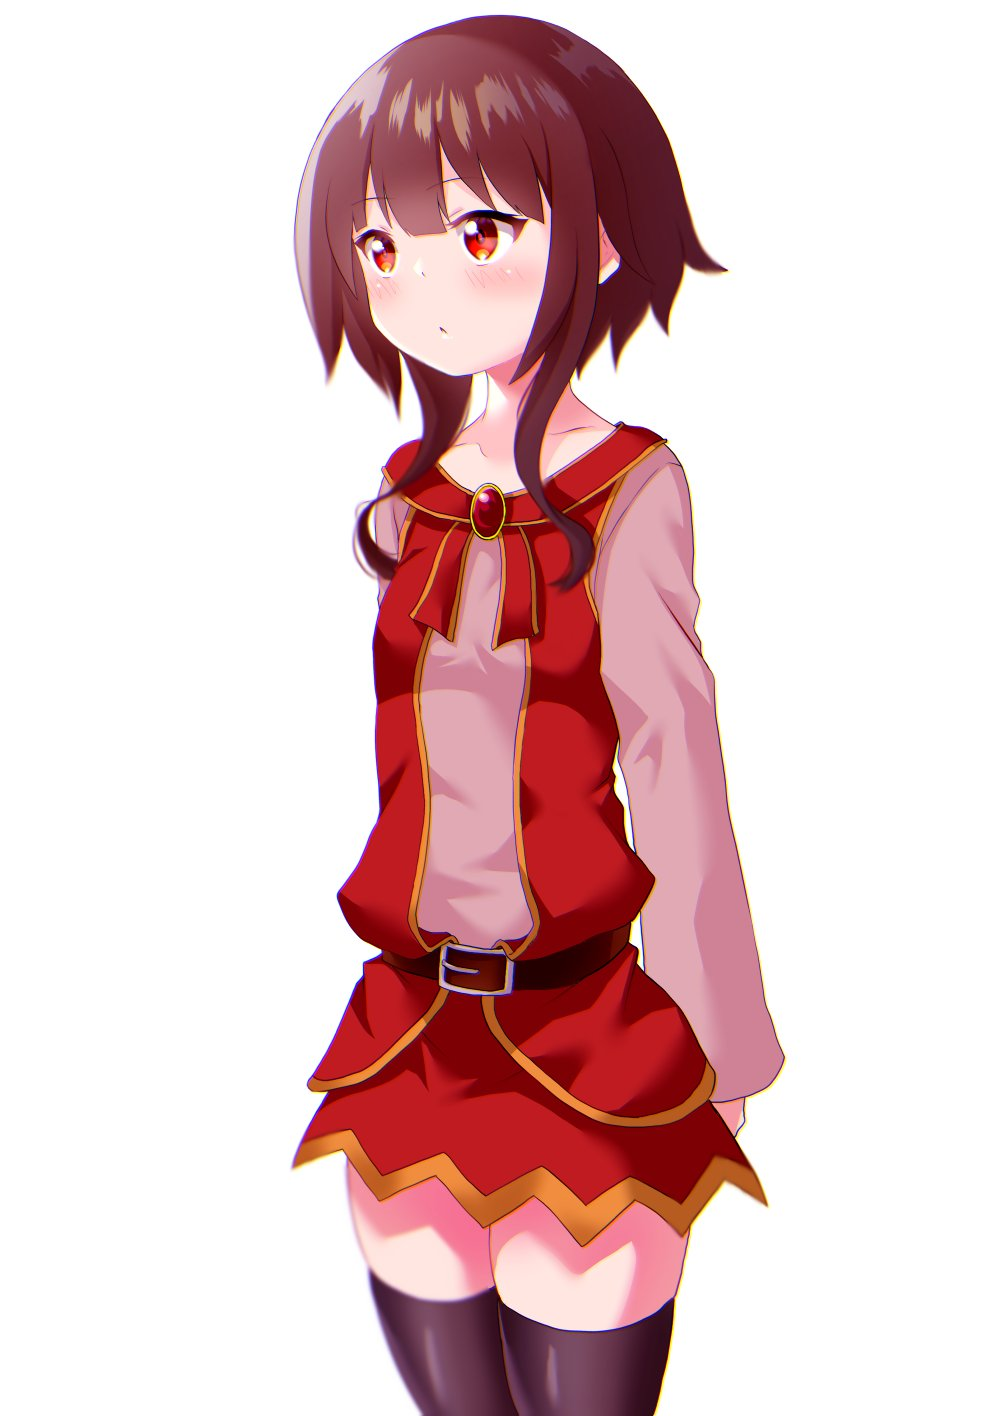 Megumin's cute casual clothes in 2020 Casual outfits